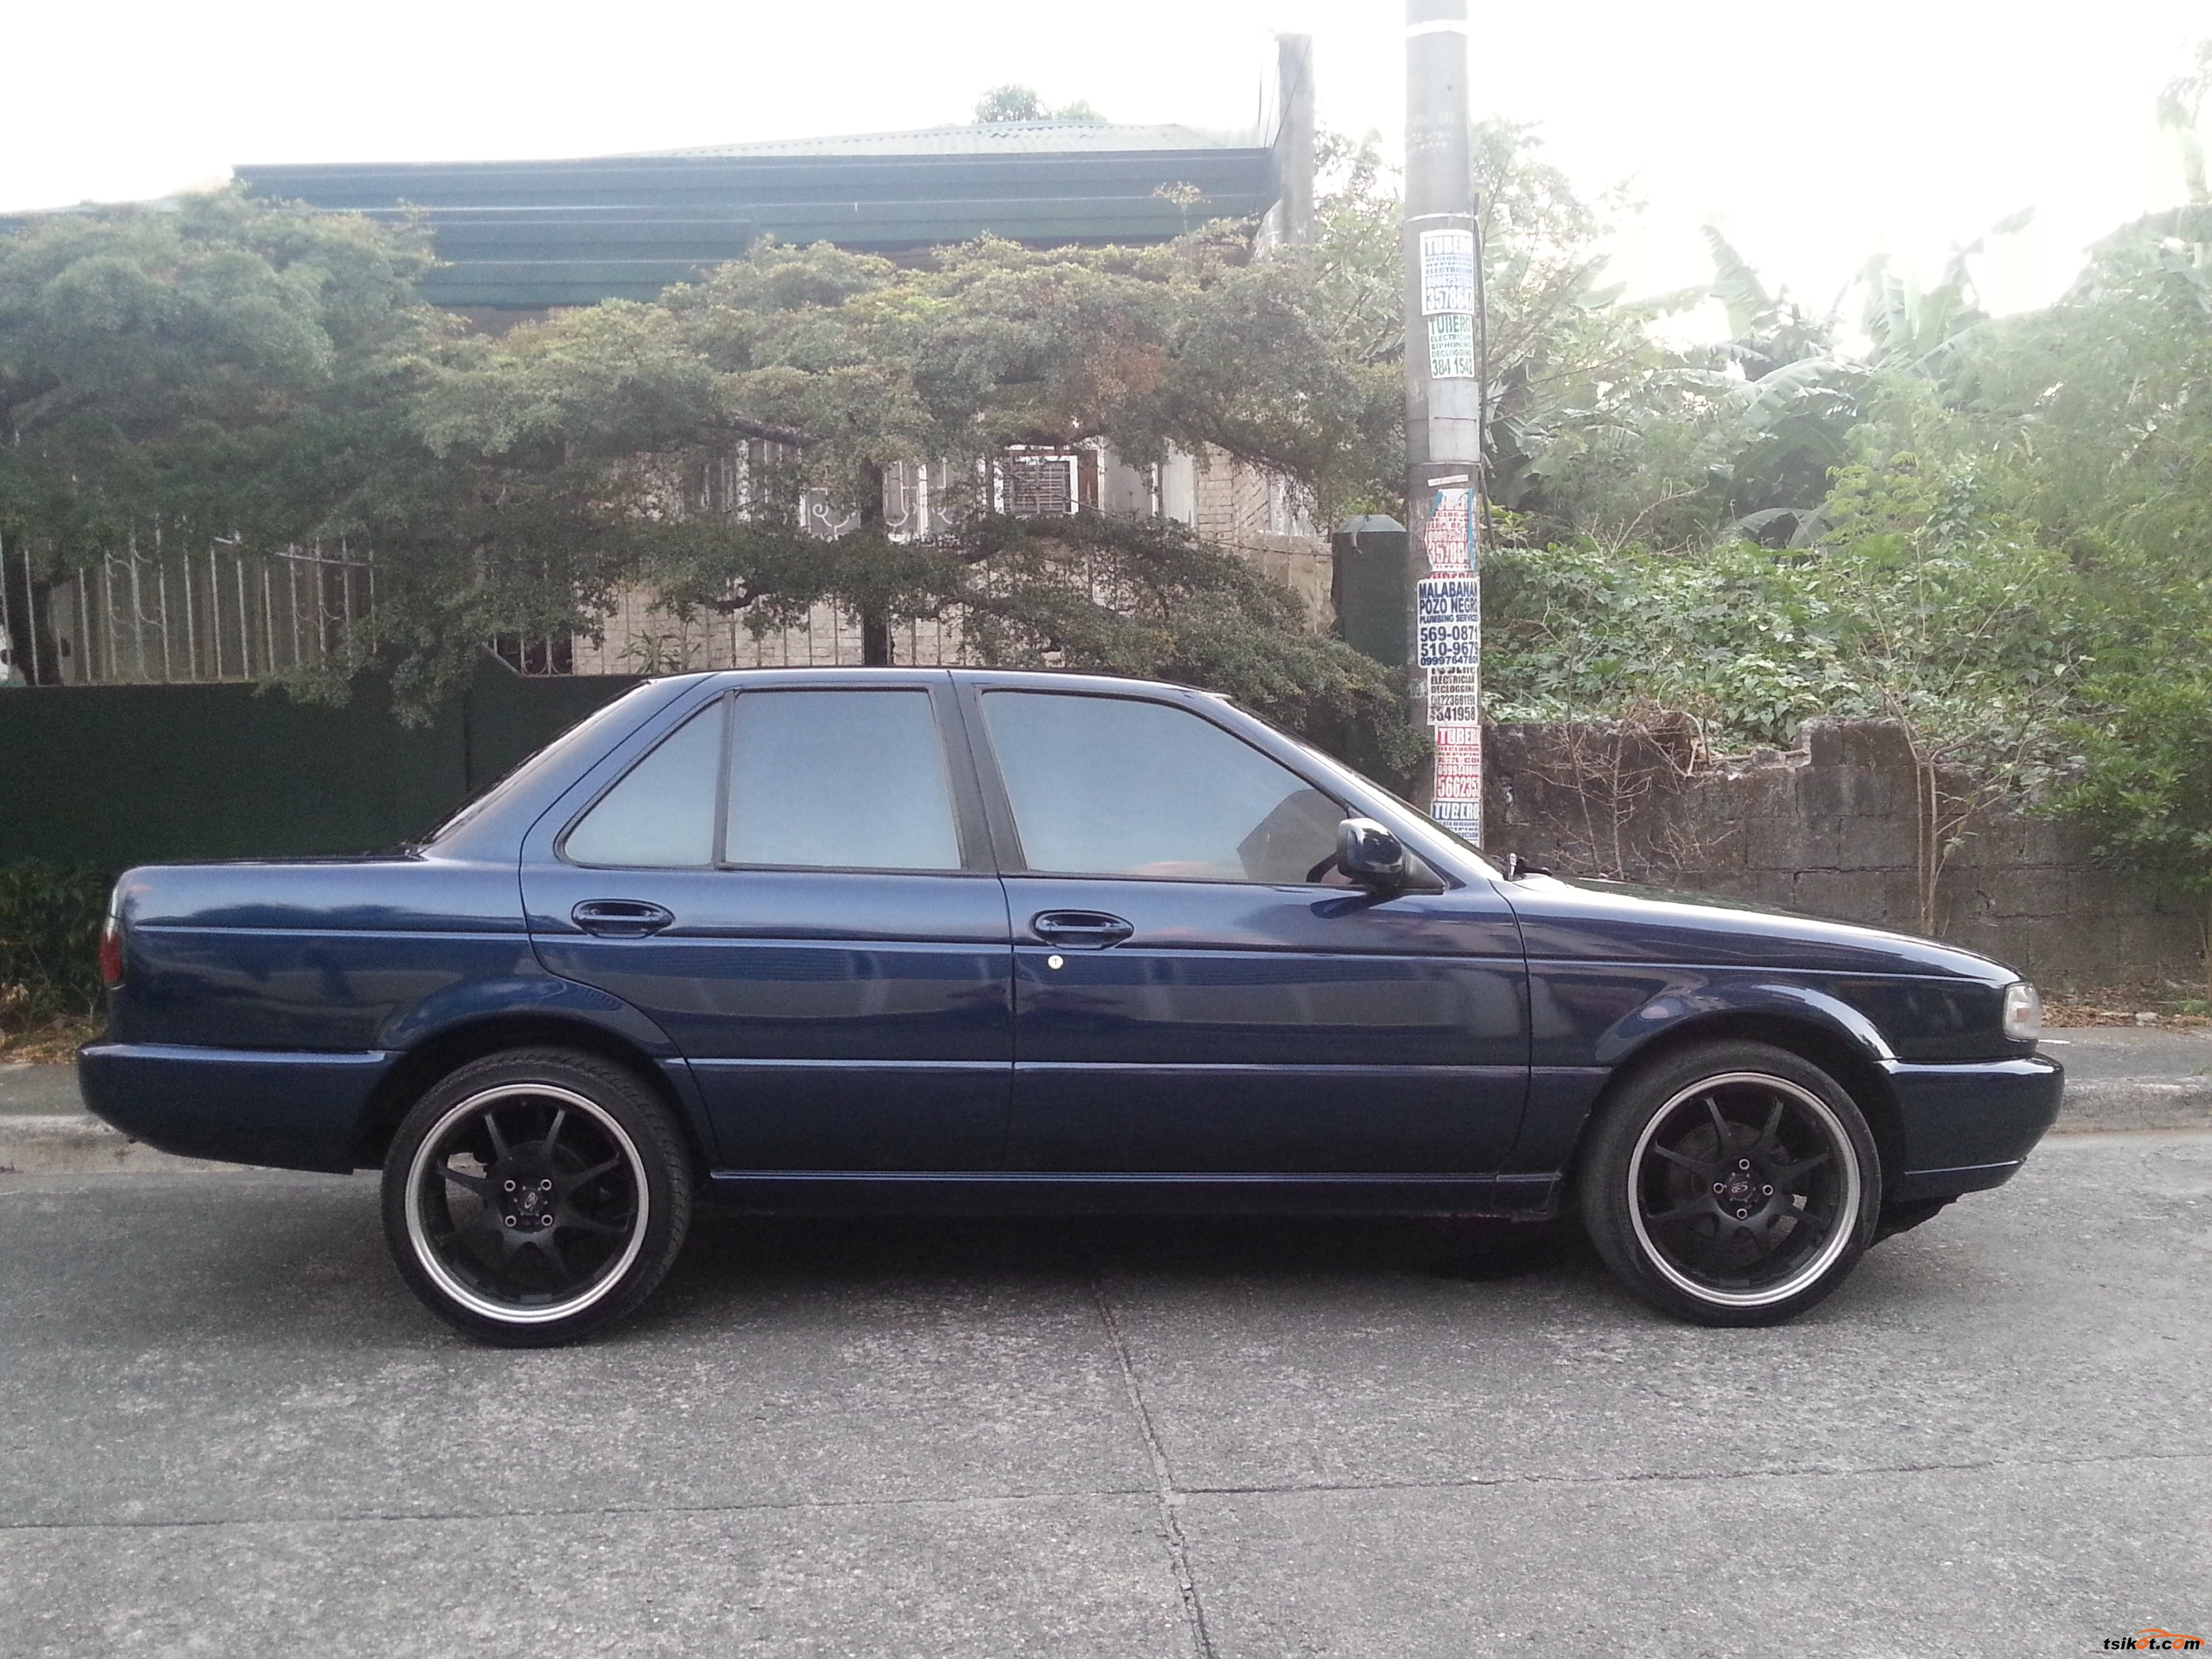 nissan sentra 1994 - car for  - | tsikot #1 classifieds